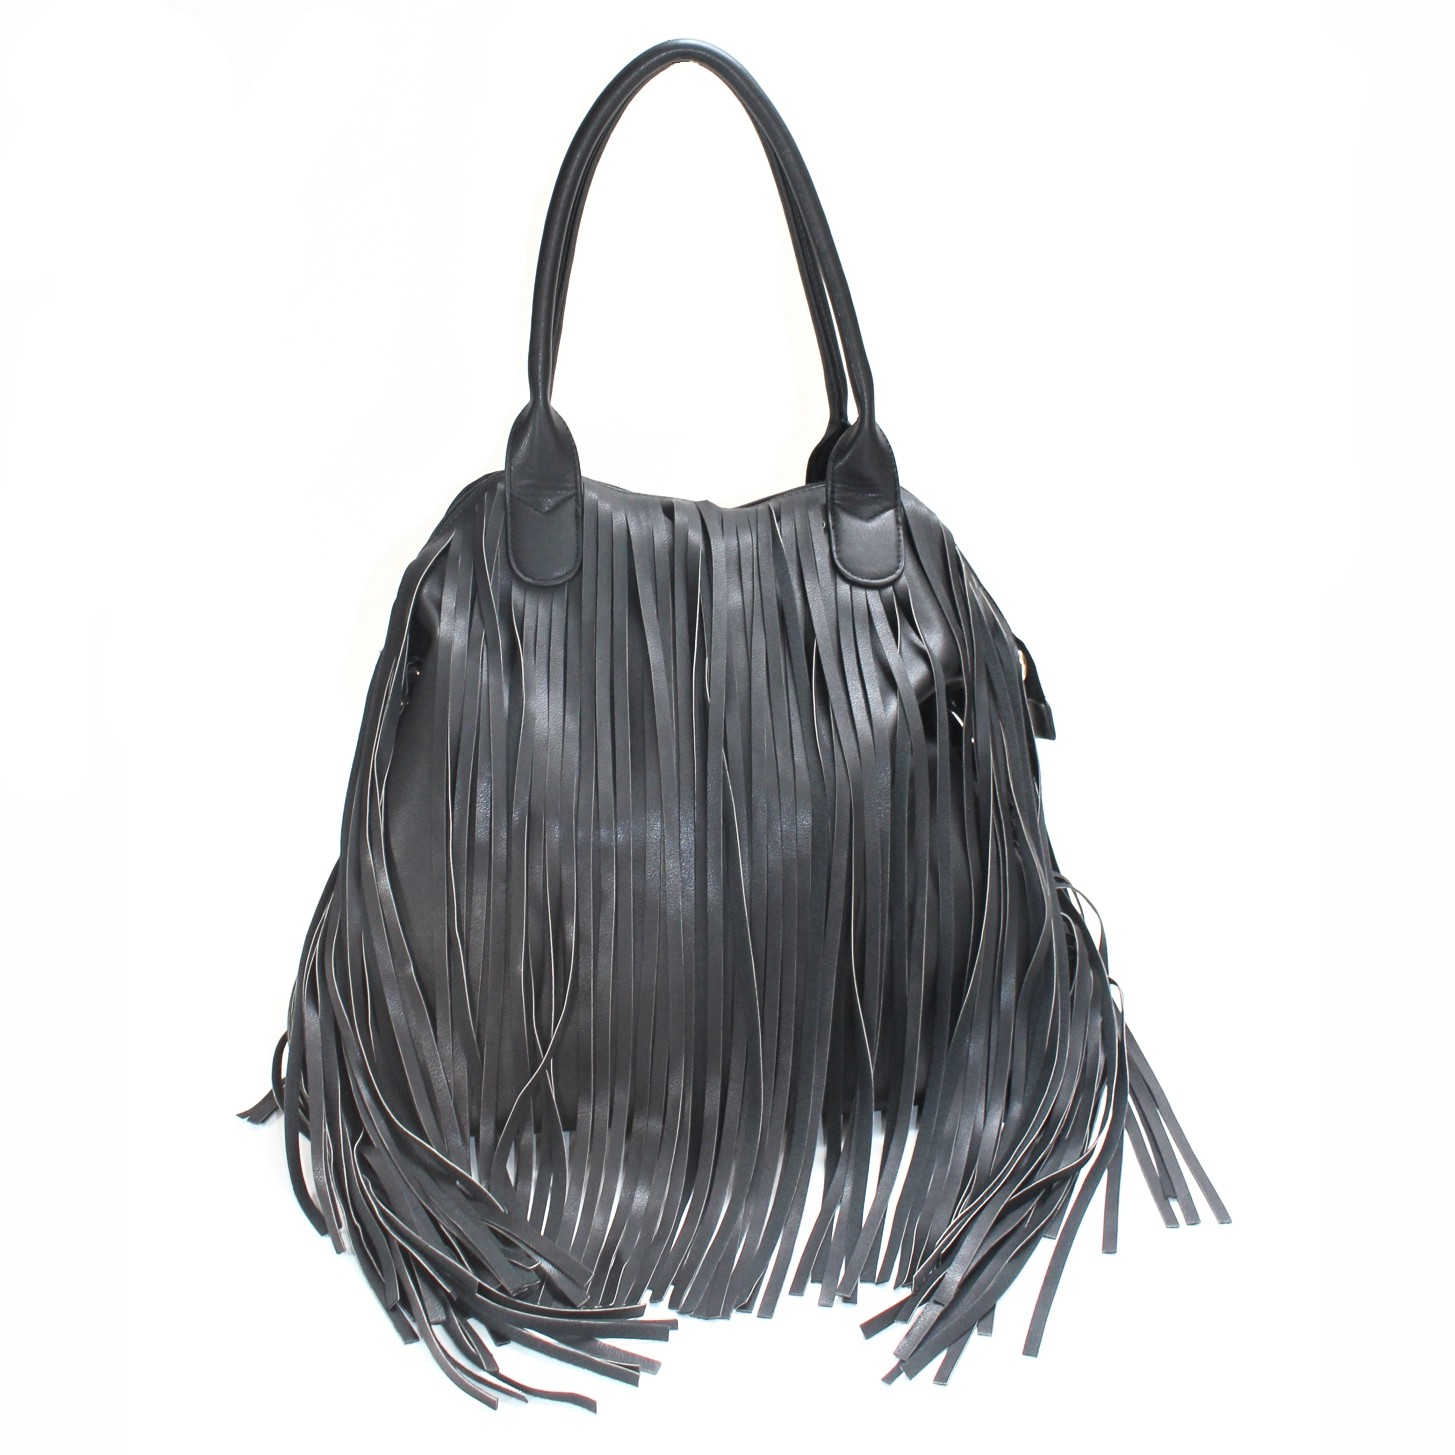 black fringe bagsLazenay Fringe Bag in Black cvTSI9Ha